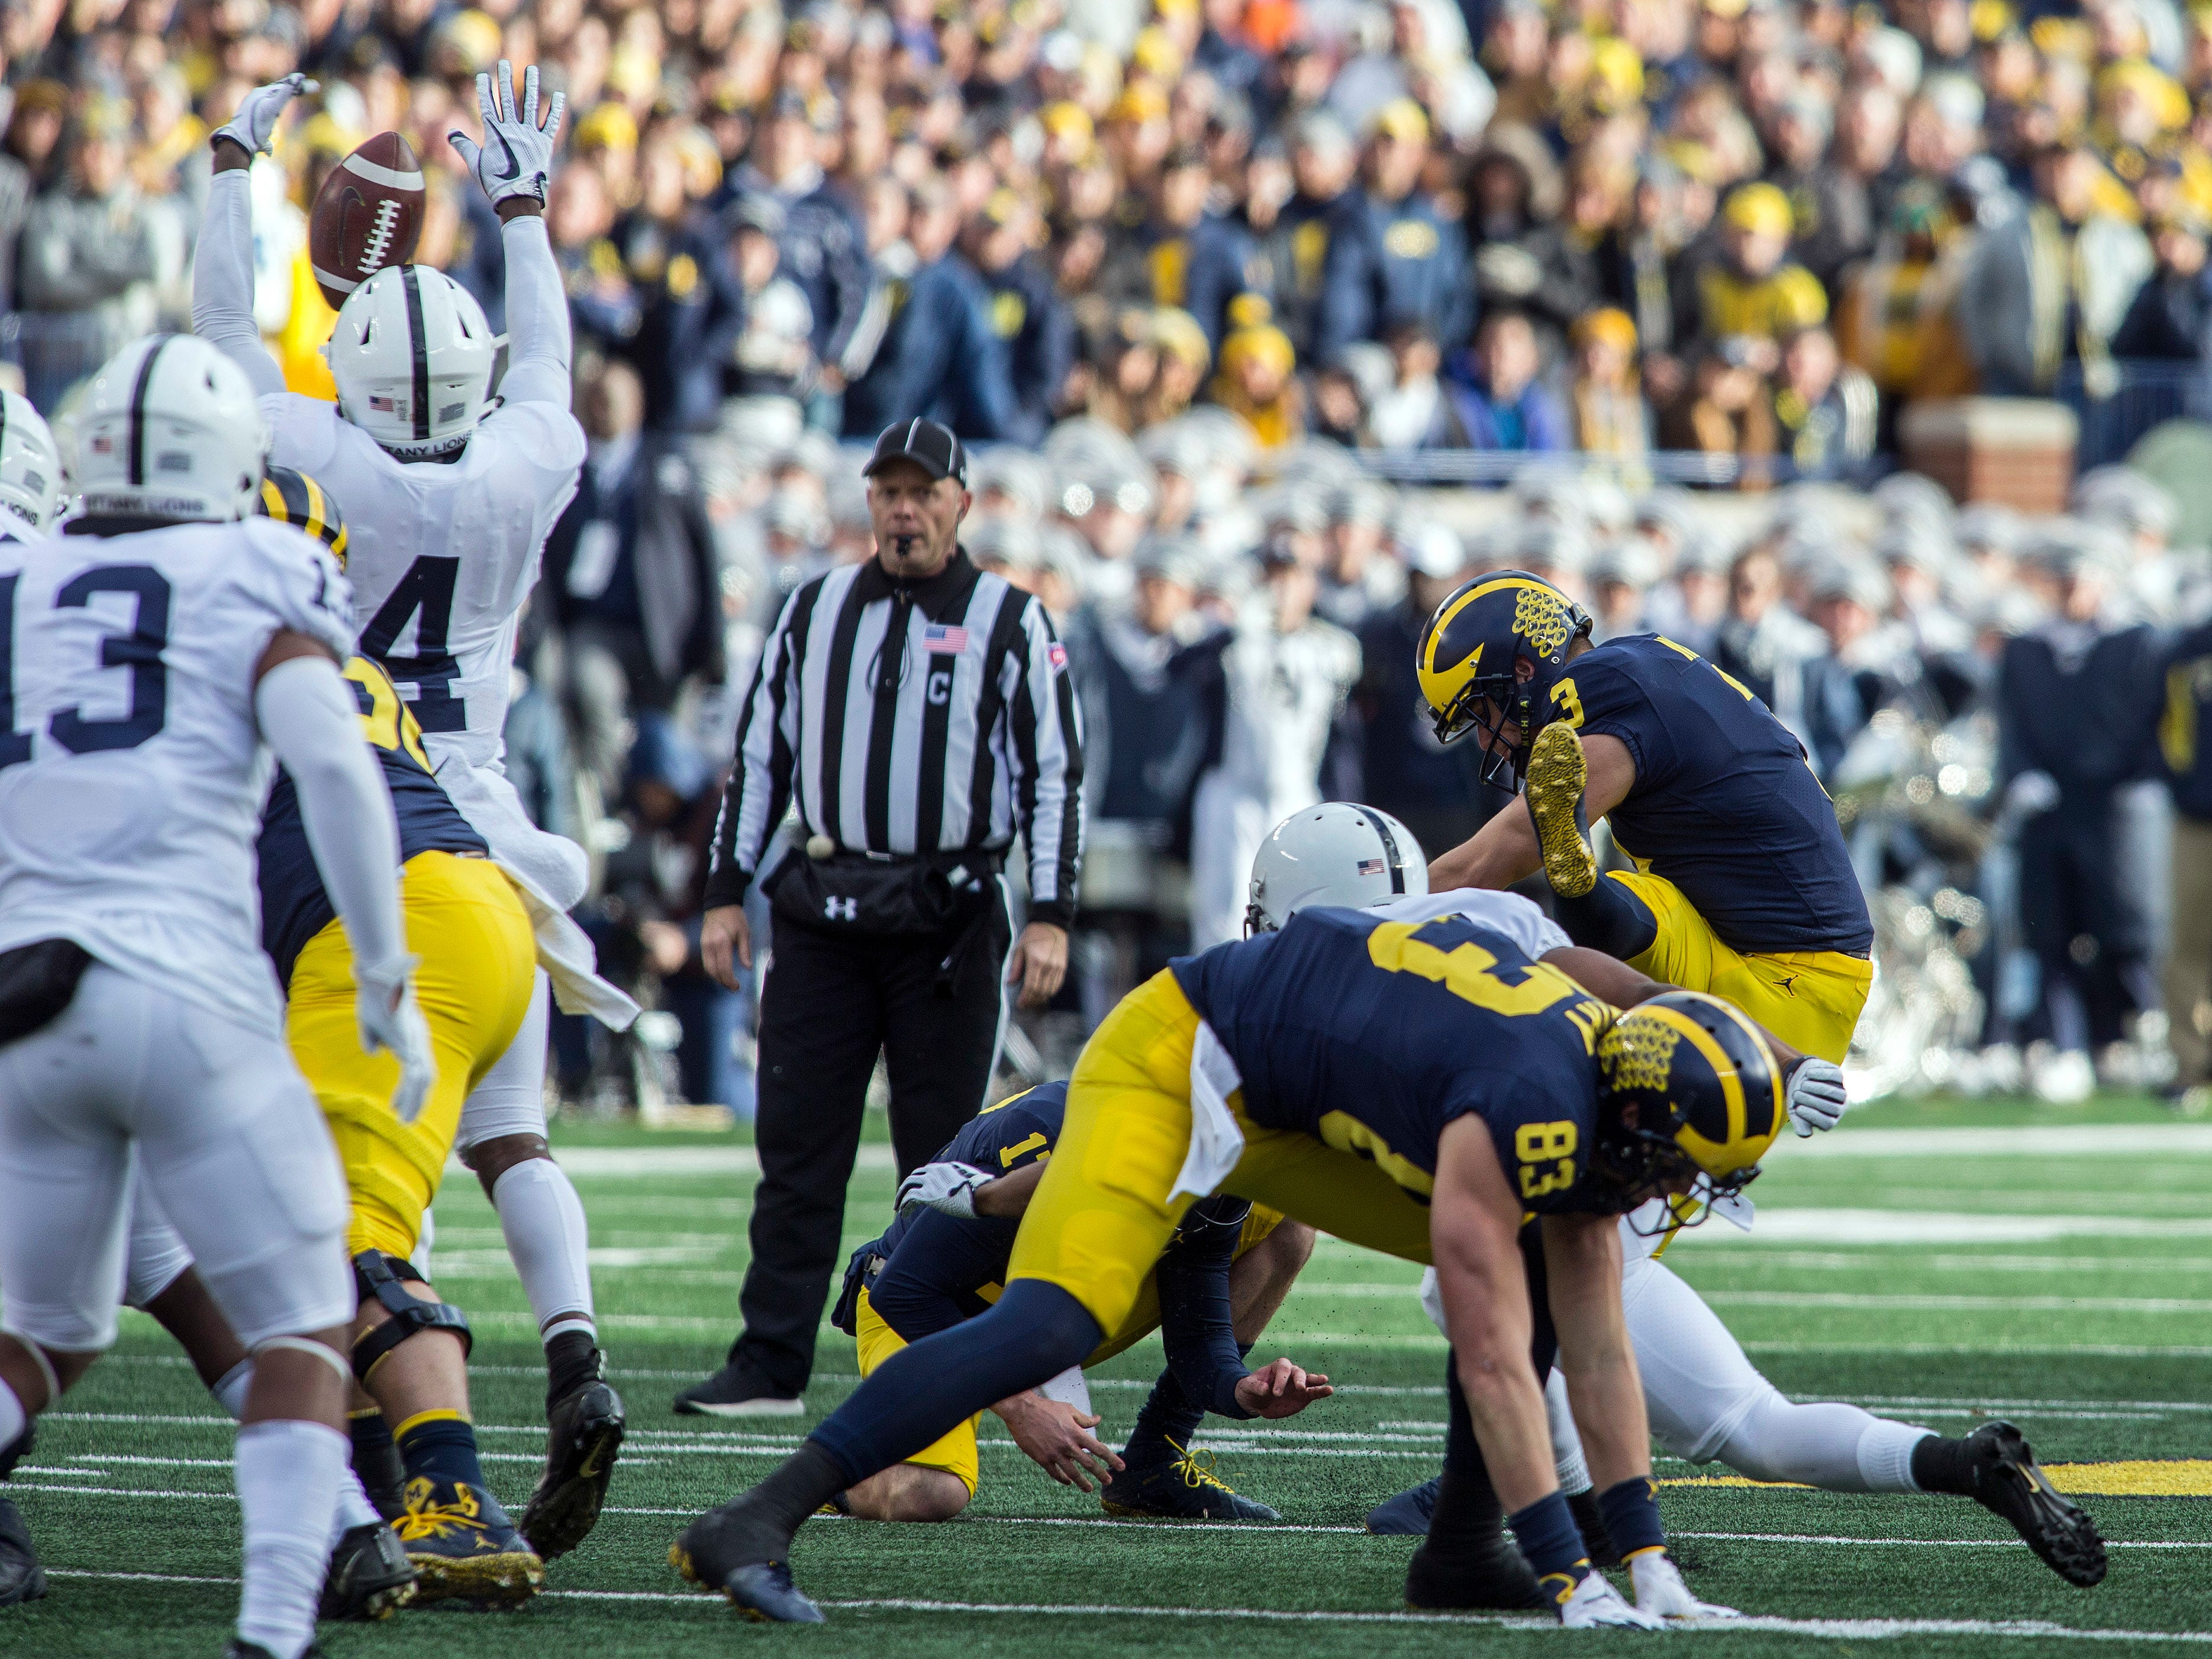 Michigan kicker Quinn Nordin (3) has a 50-yard field goal attempt blocked by Penn State safety Nick Scott (4) in the second quarter of an NCAA college football game in Ann Arbor, Mich., Saturday, Nov. 3, 2018. (AP Photo/Tony Ding)